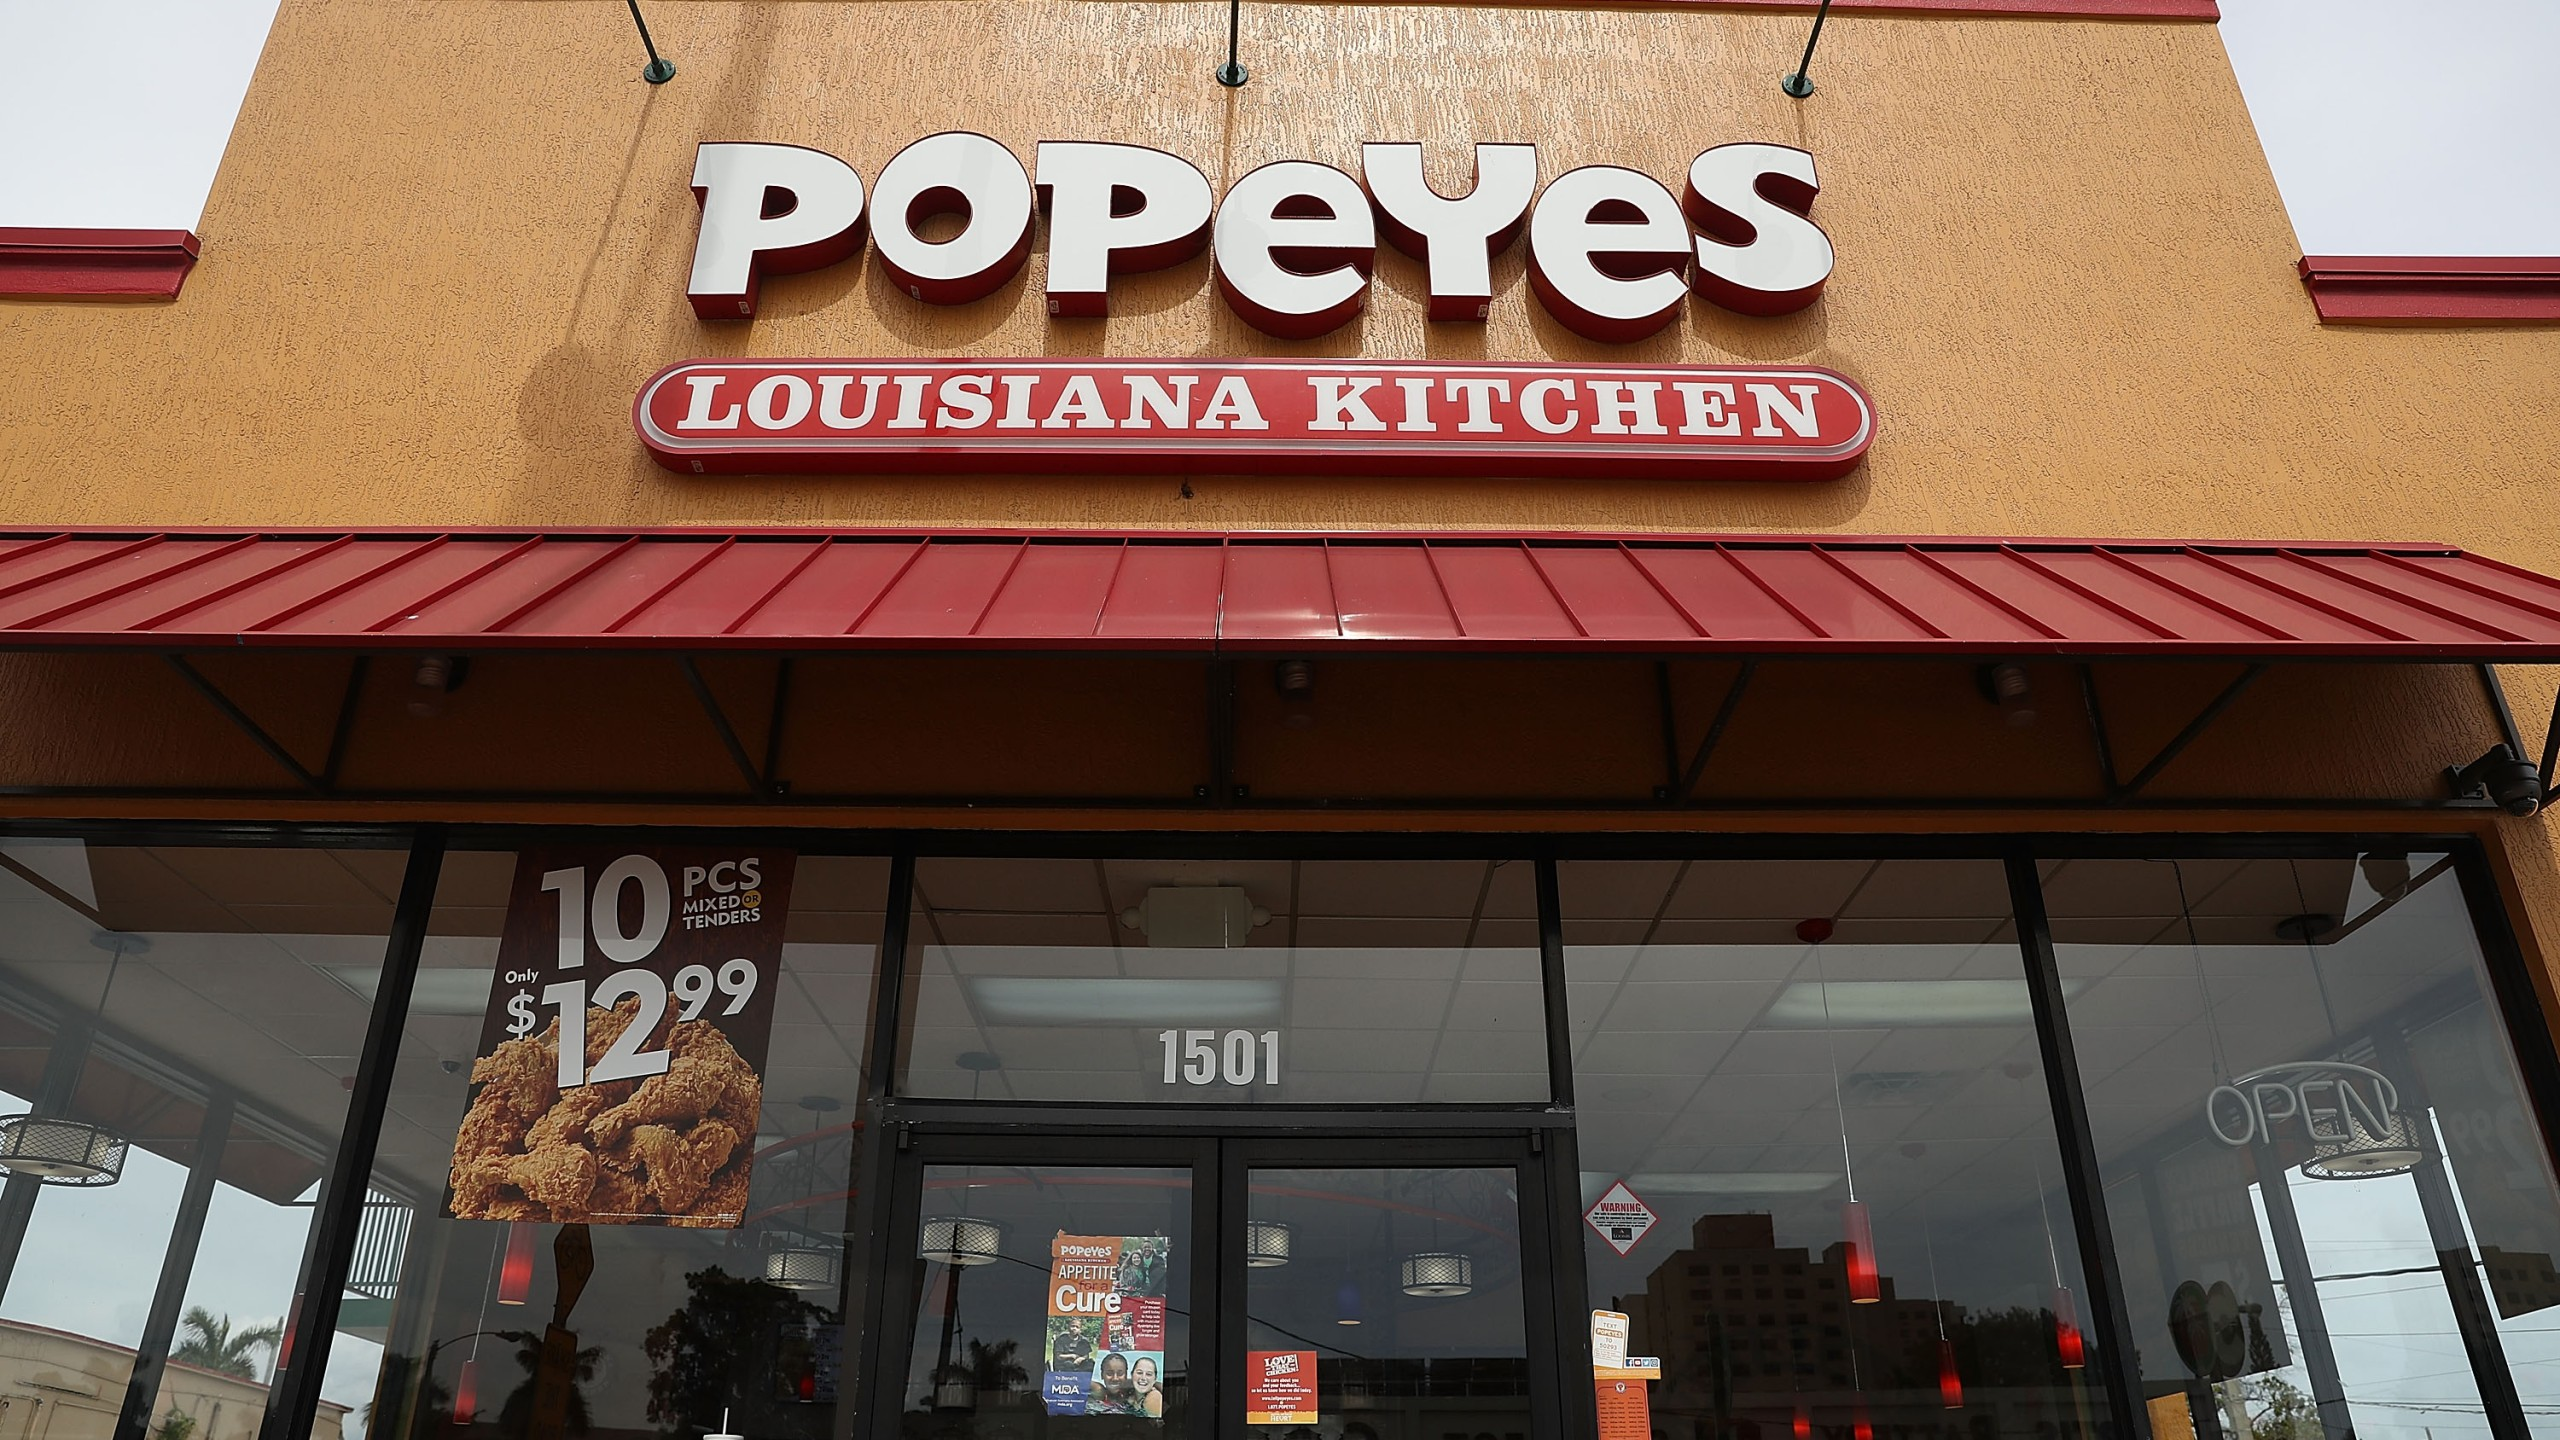 A Popeyes restaurant in Miami, Florida, is seen on Feb. 21, 2017.(Credit: Joe Raedle / Getty Images)